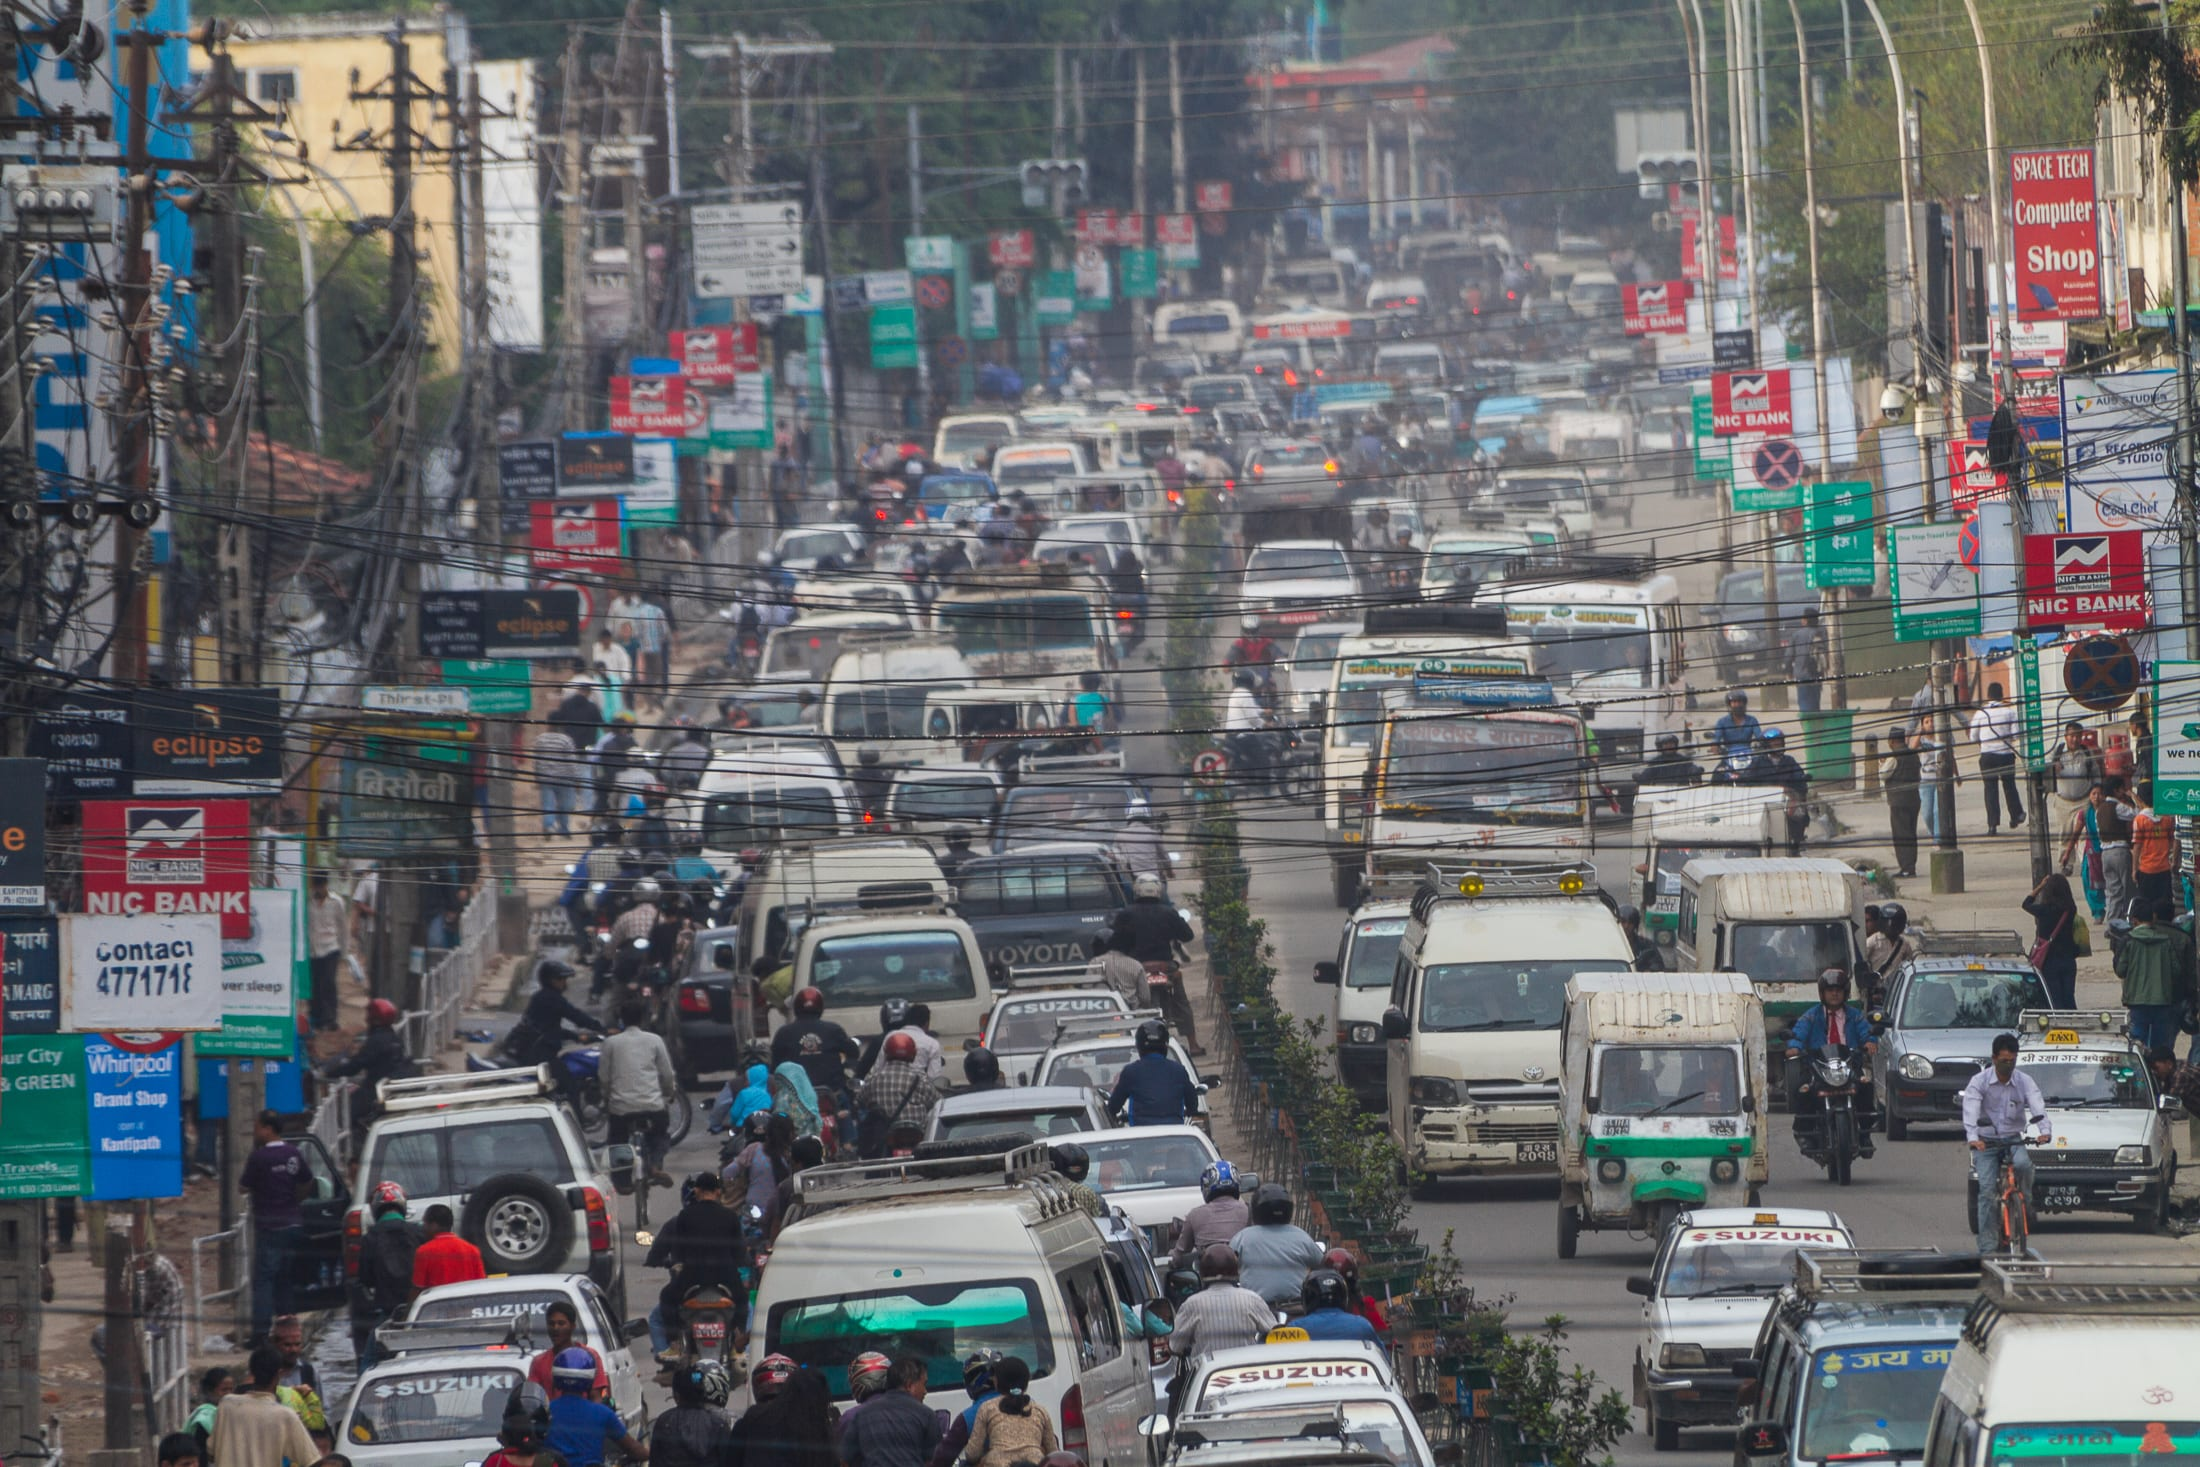 View of traffic in city – Nepal